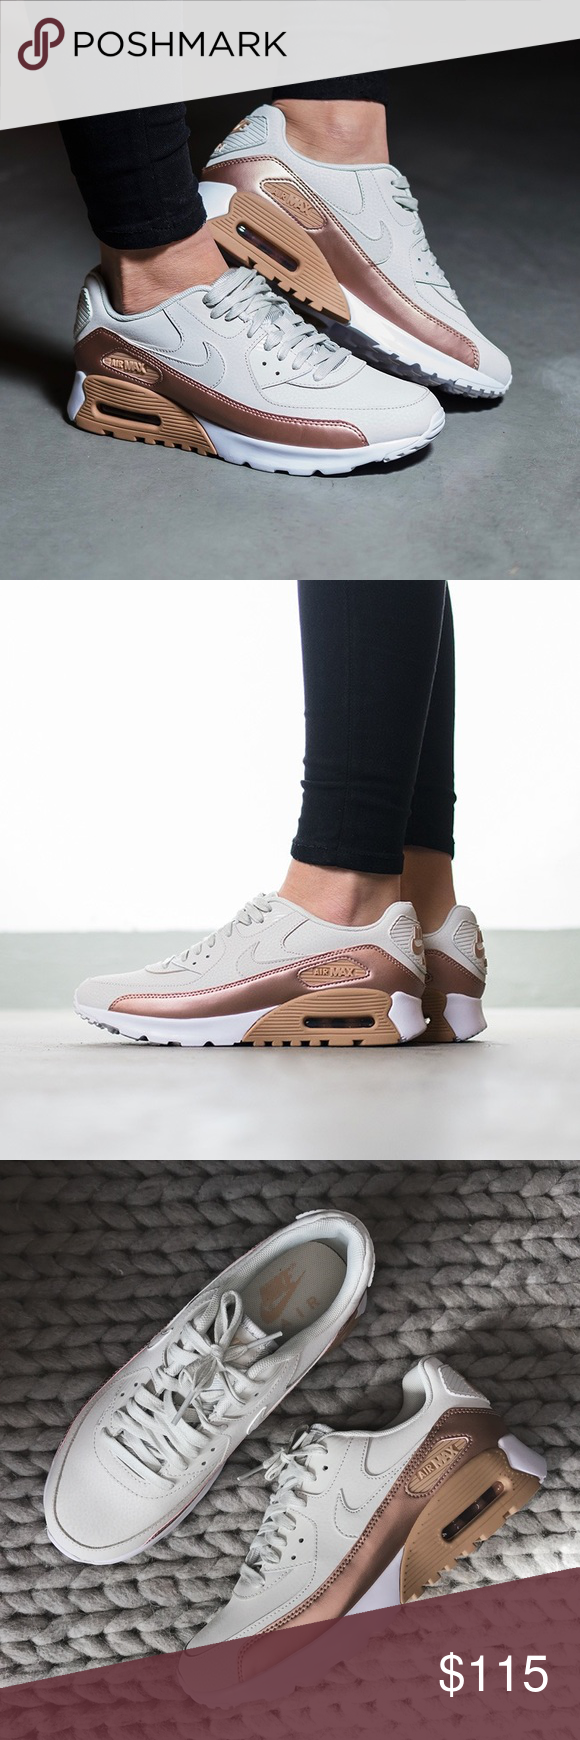 186dba69f8 Nike Air Max 90 Ultra Nude + Copper SE Sneakers •A subtle metallic sheen  adds a fresh twist to a standout sneaker featuring a cushioned Max Air unit  that ...